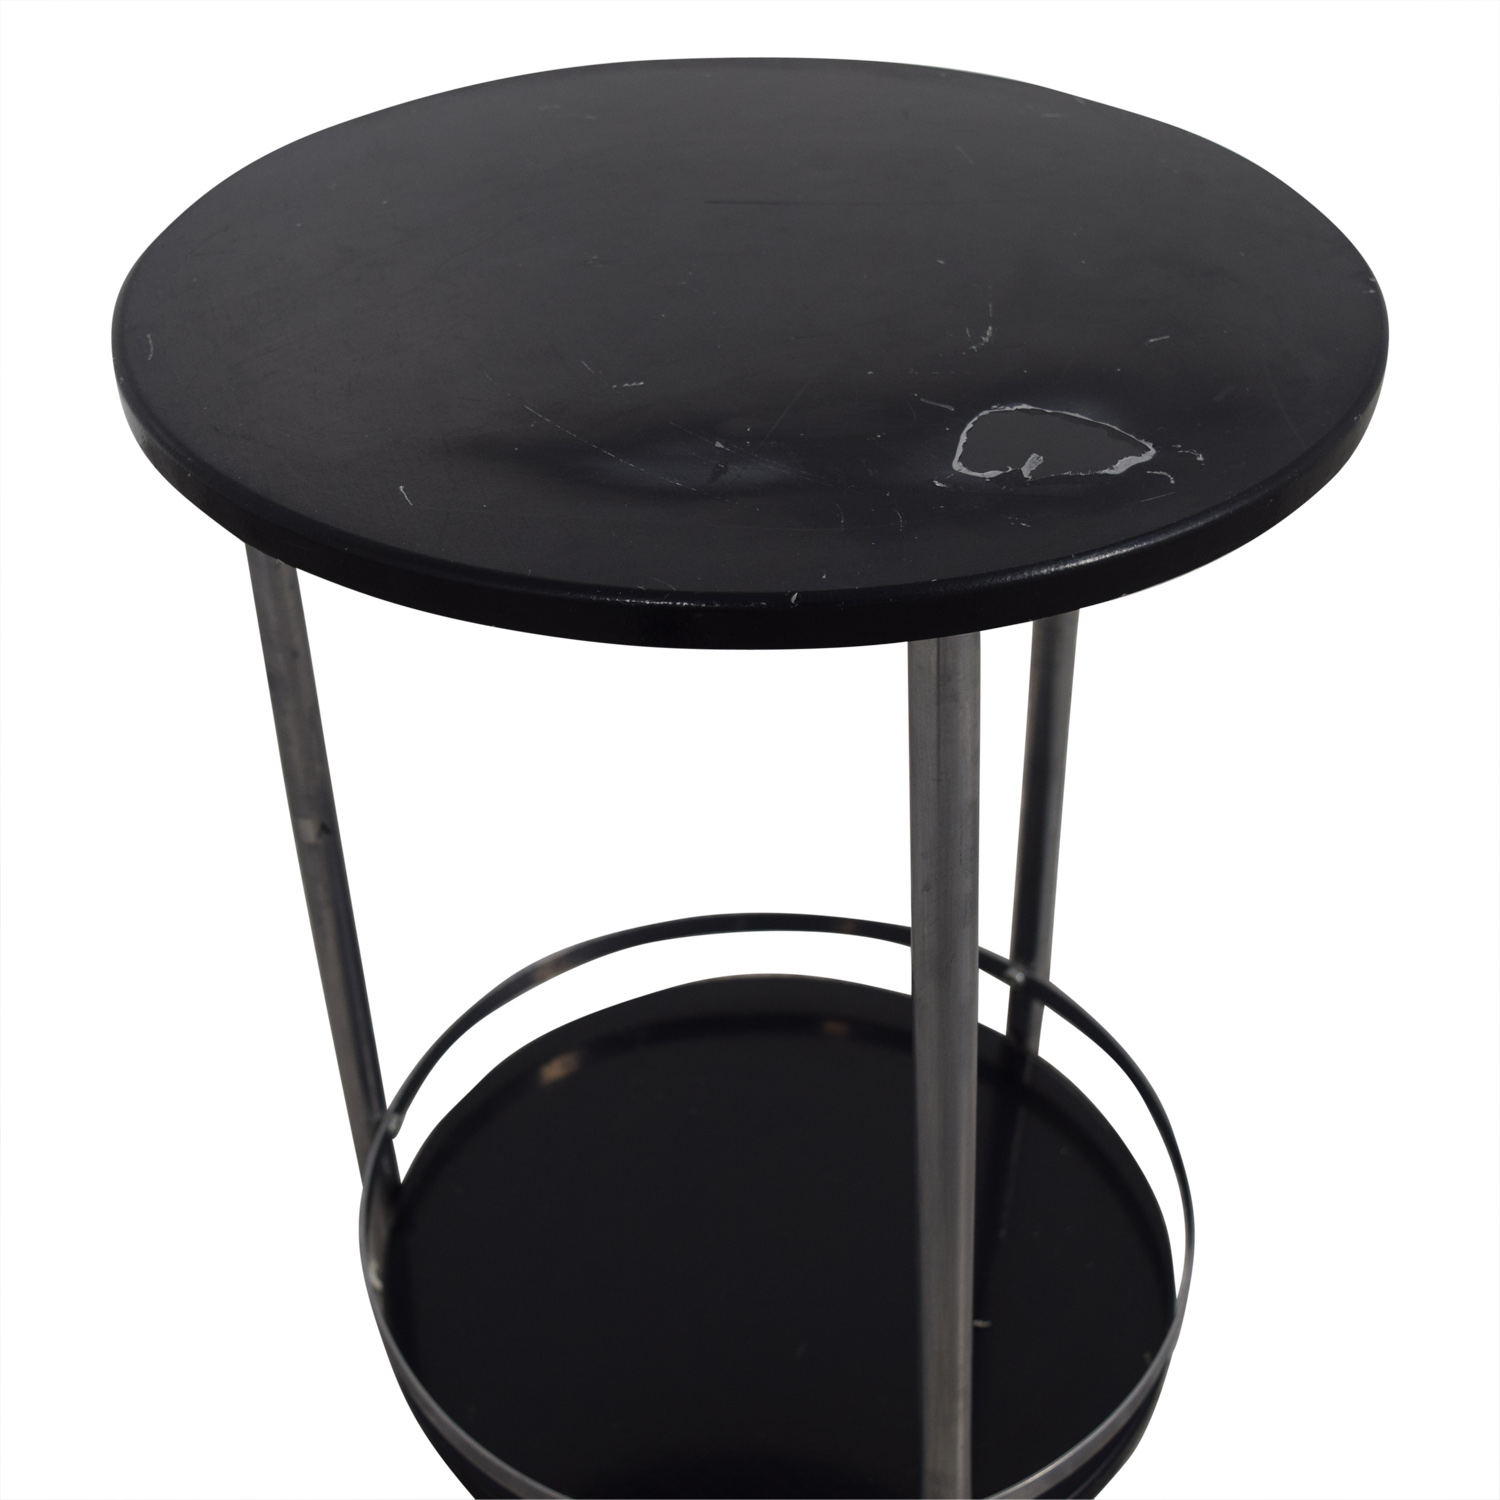 66 off round black and chrome end table tables for Buy round table